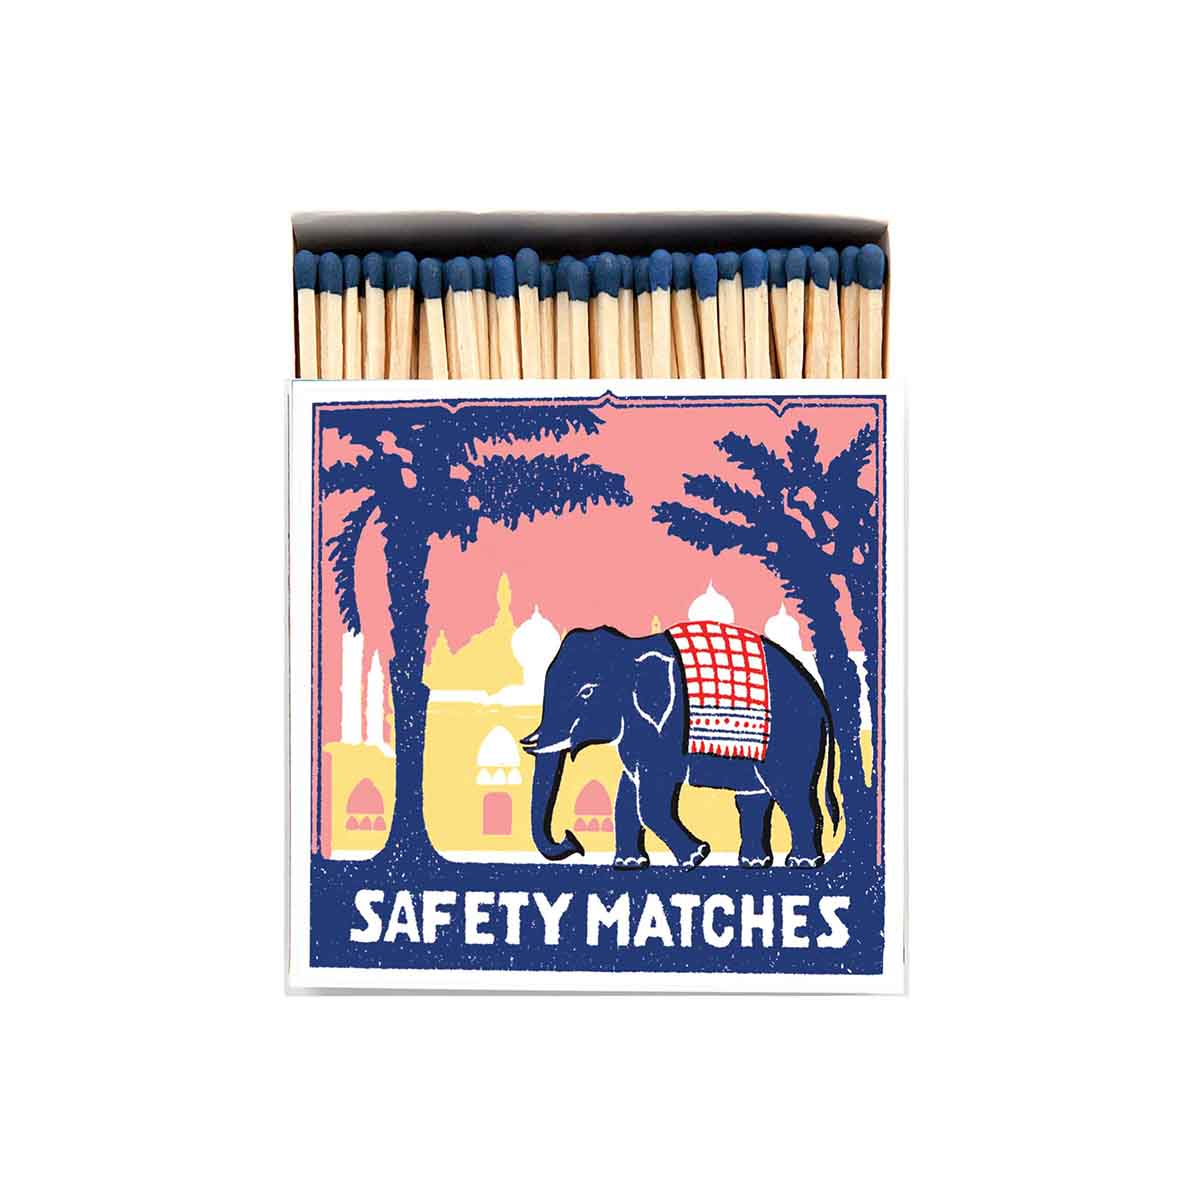 Luxury Matches - Pink Elephant